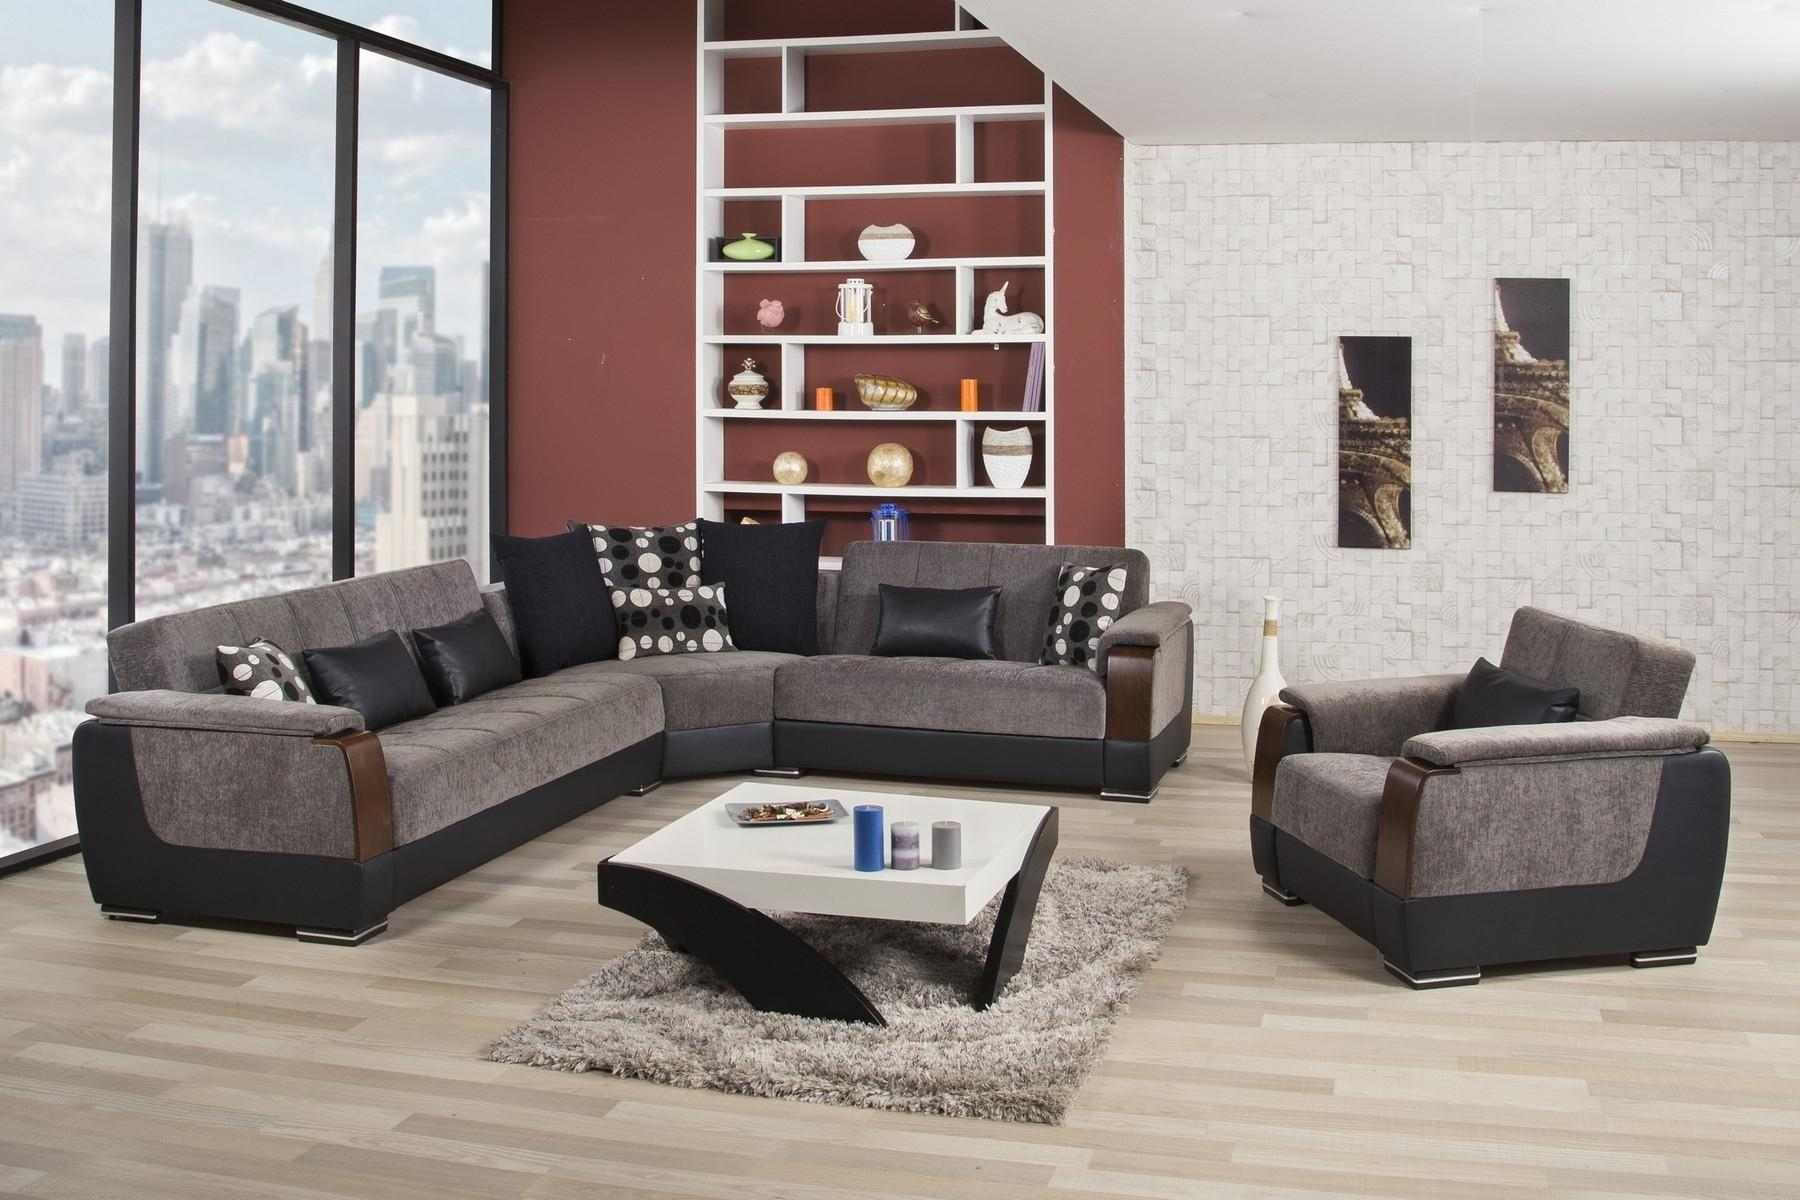 Living Room : Pit Sectional Charcoal Sectionals On Sale Couch For With Regard To Pit Sofas (View 10 of 20)